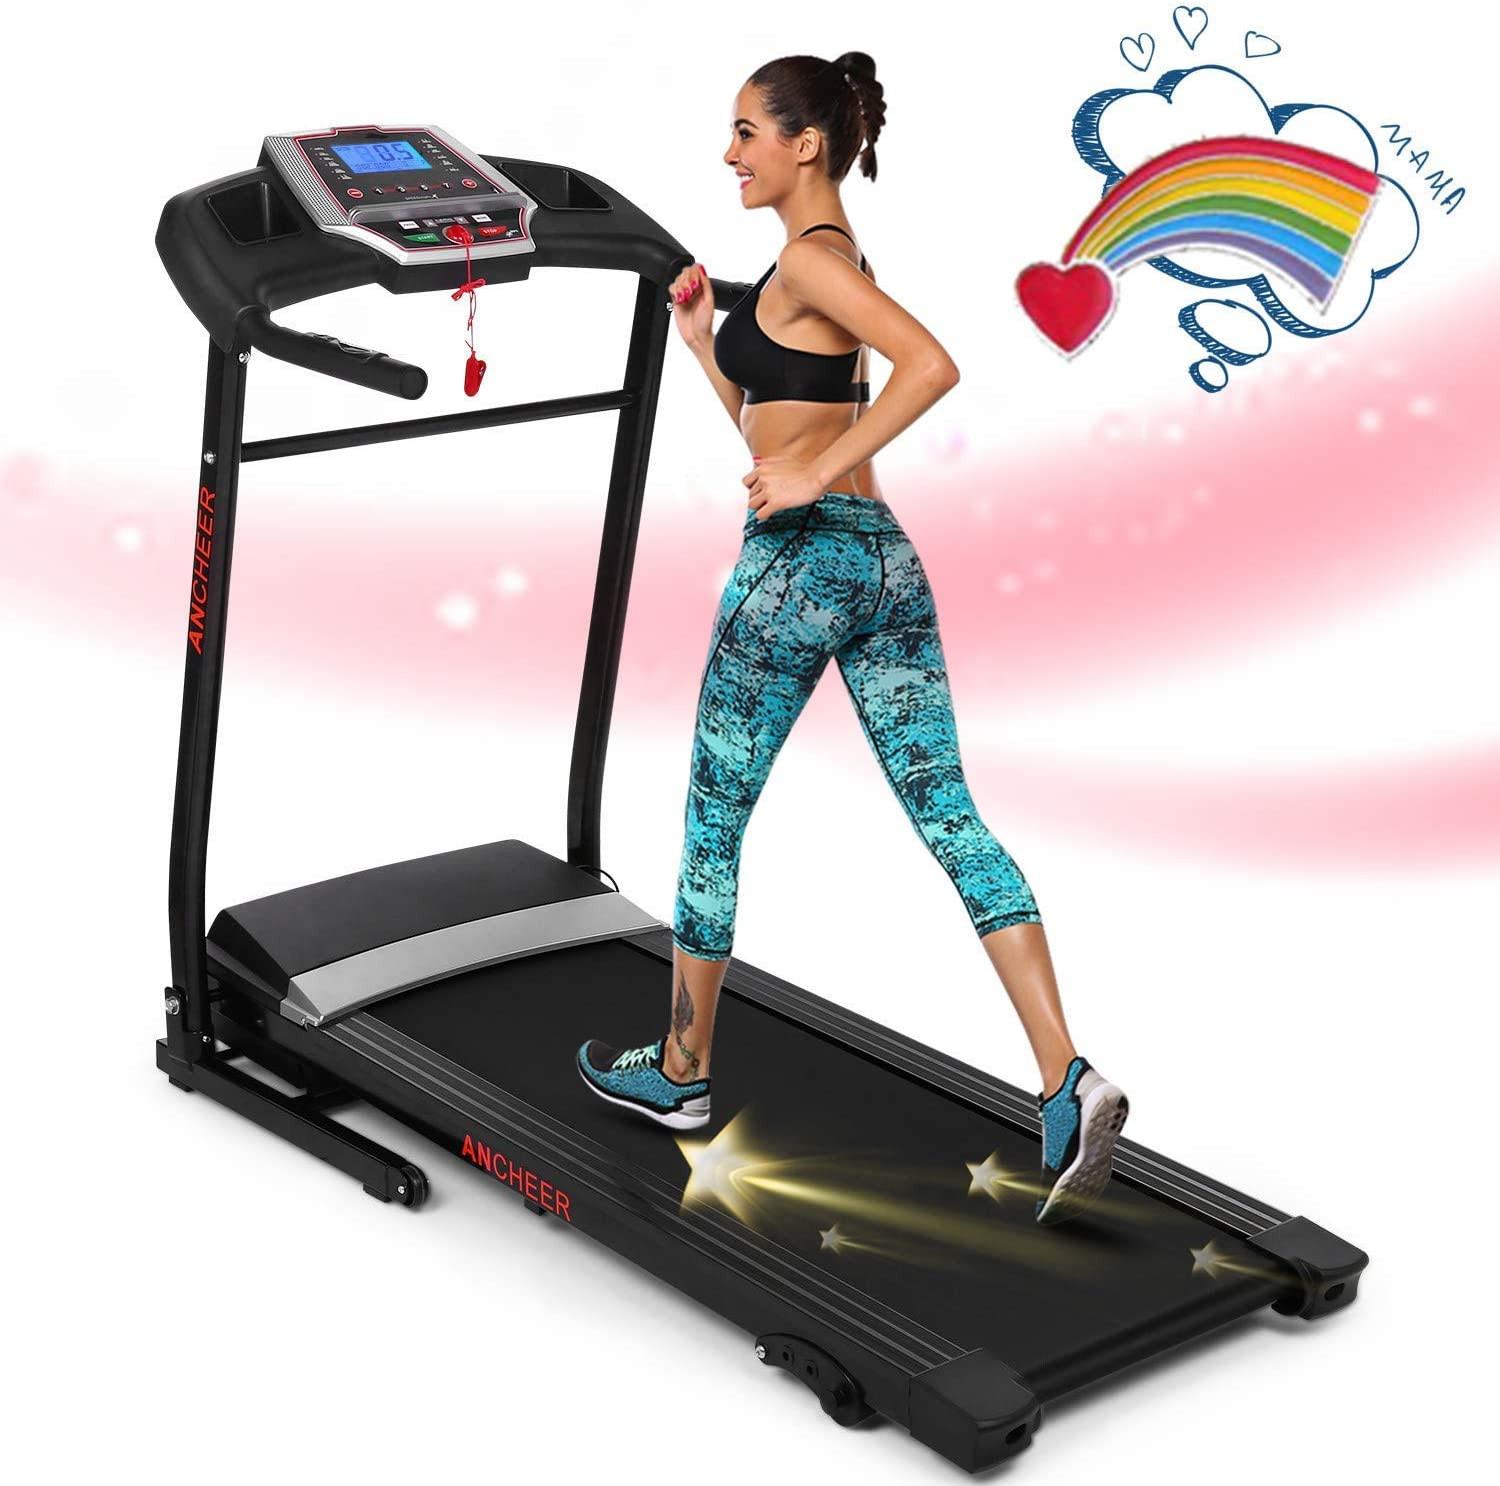 ANCHEER 2.25HP Folding Smart Electric Treadmill with Sports APP, 3 Level Manual Inclines